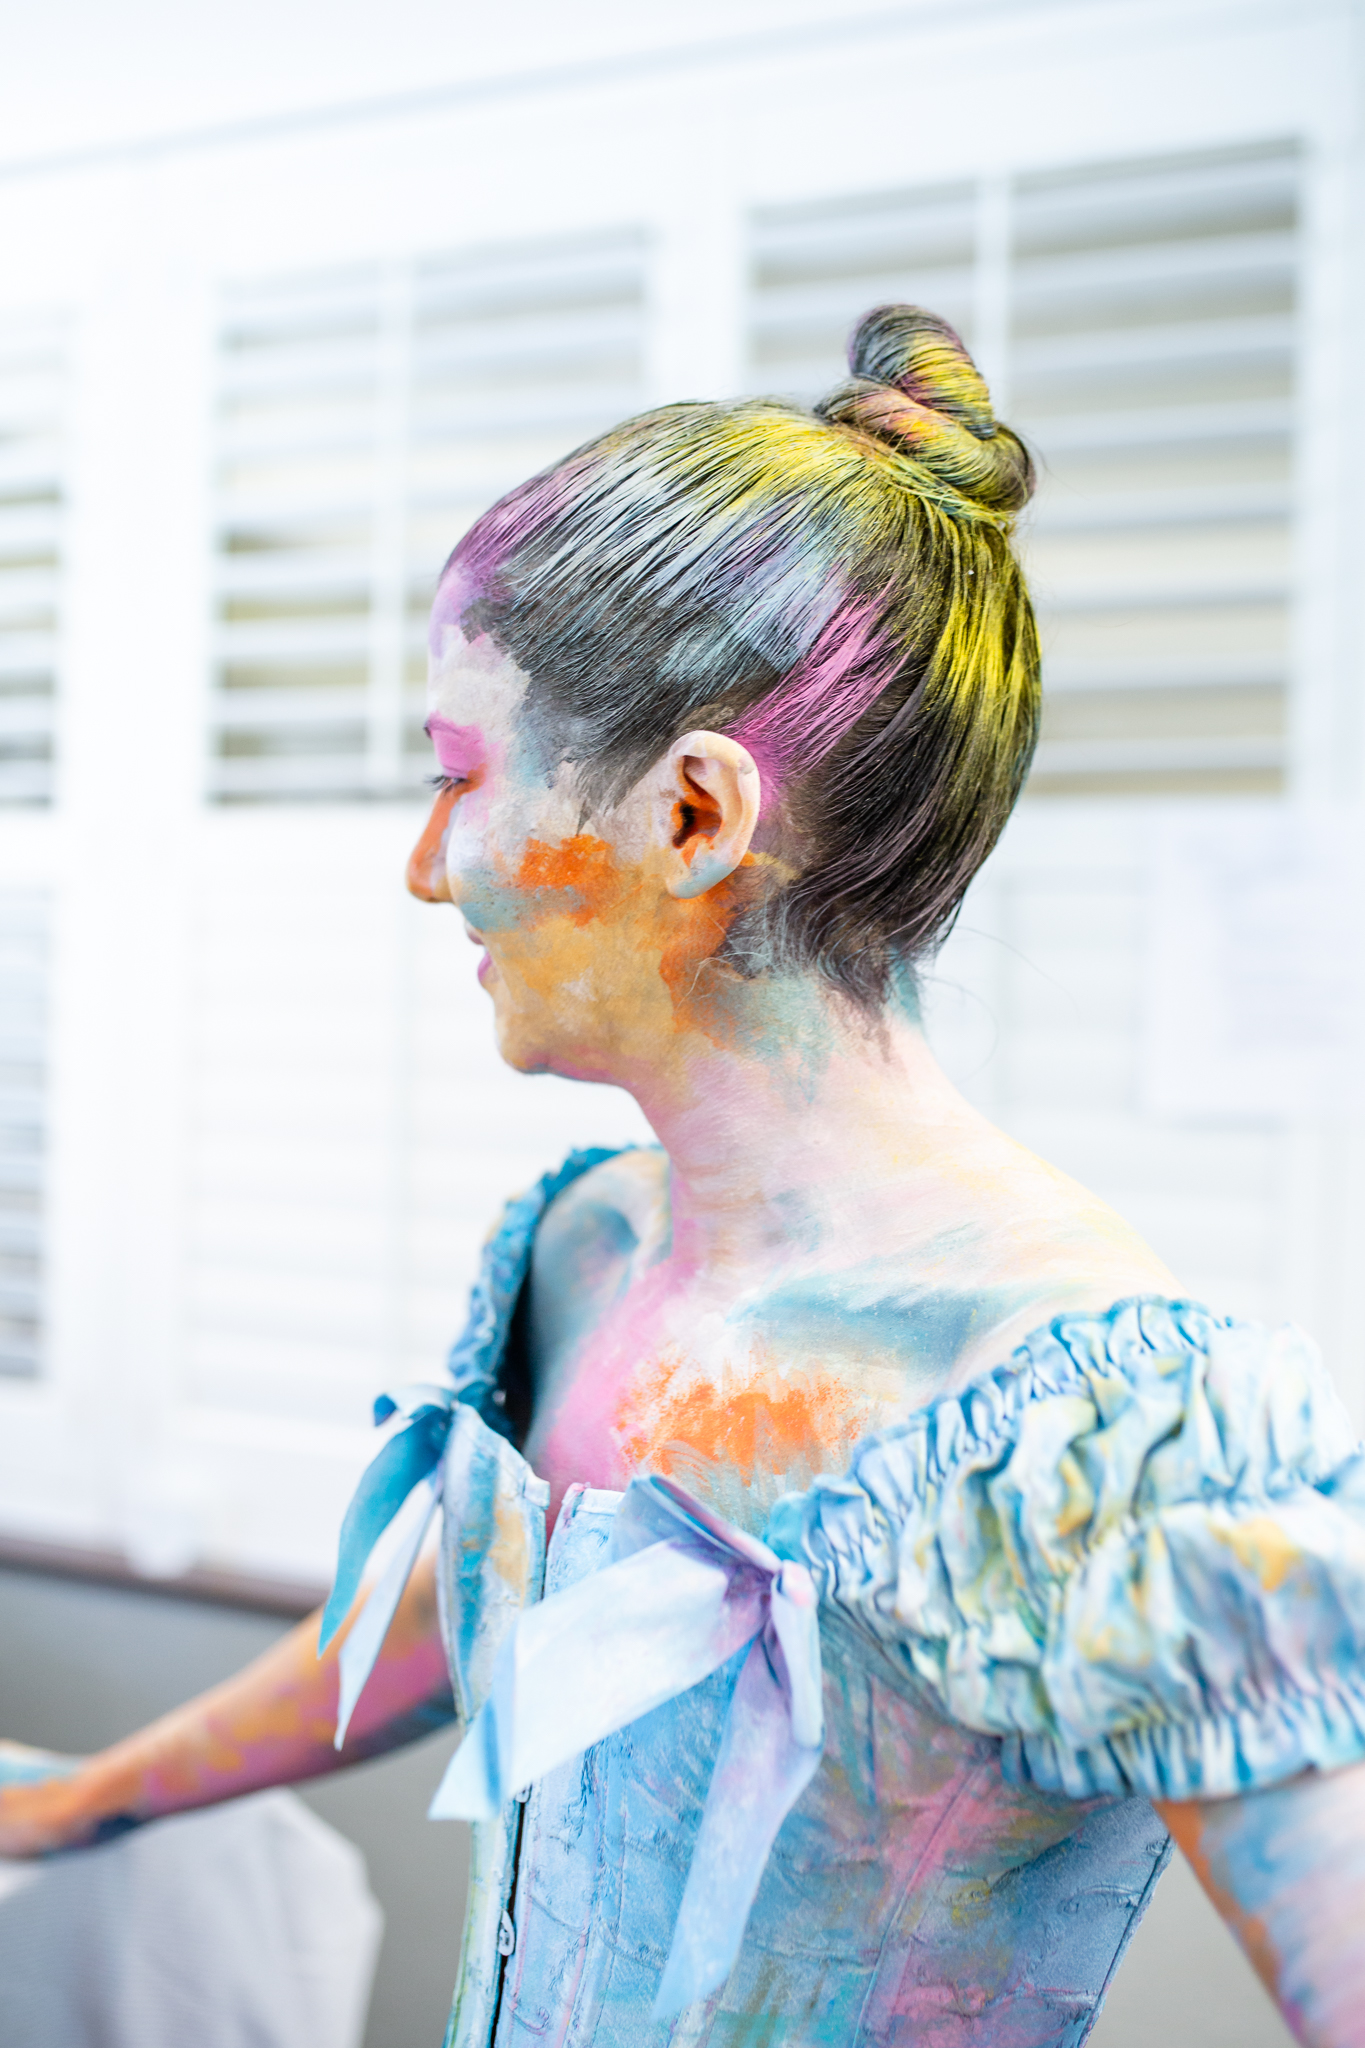 Living Art coordinated by Alison Kenyon   As Documented by Lenka